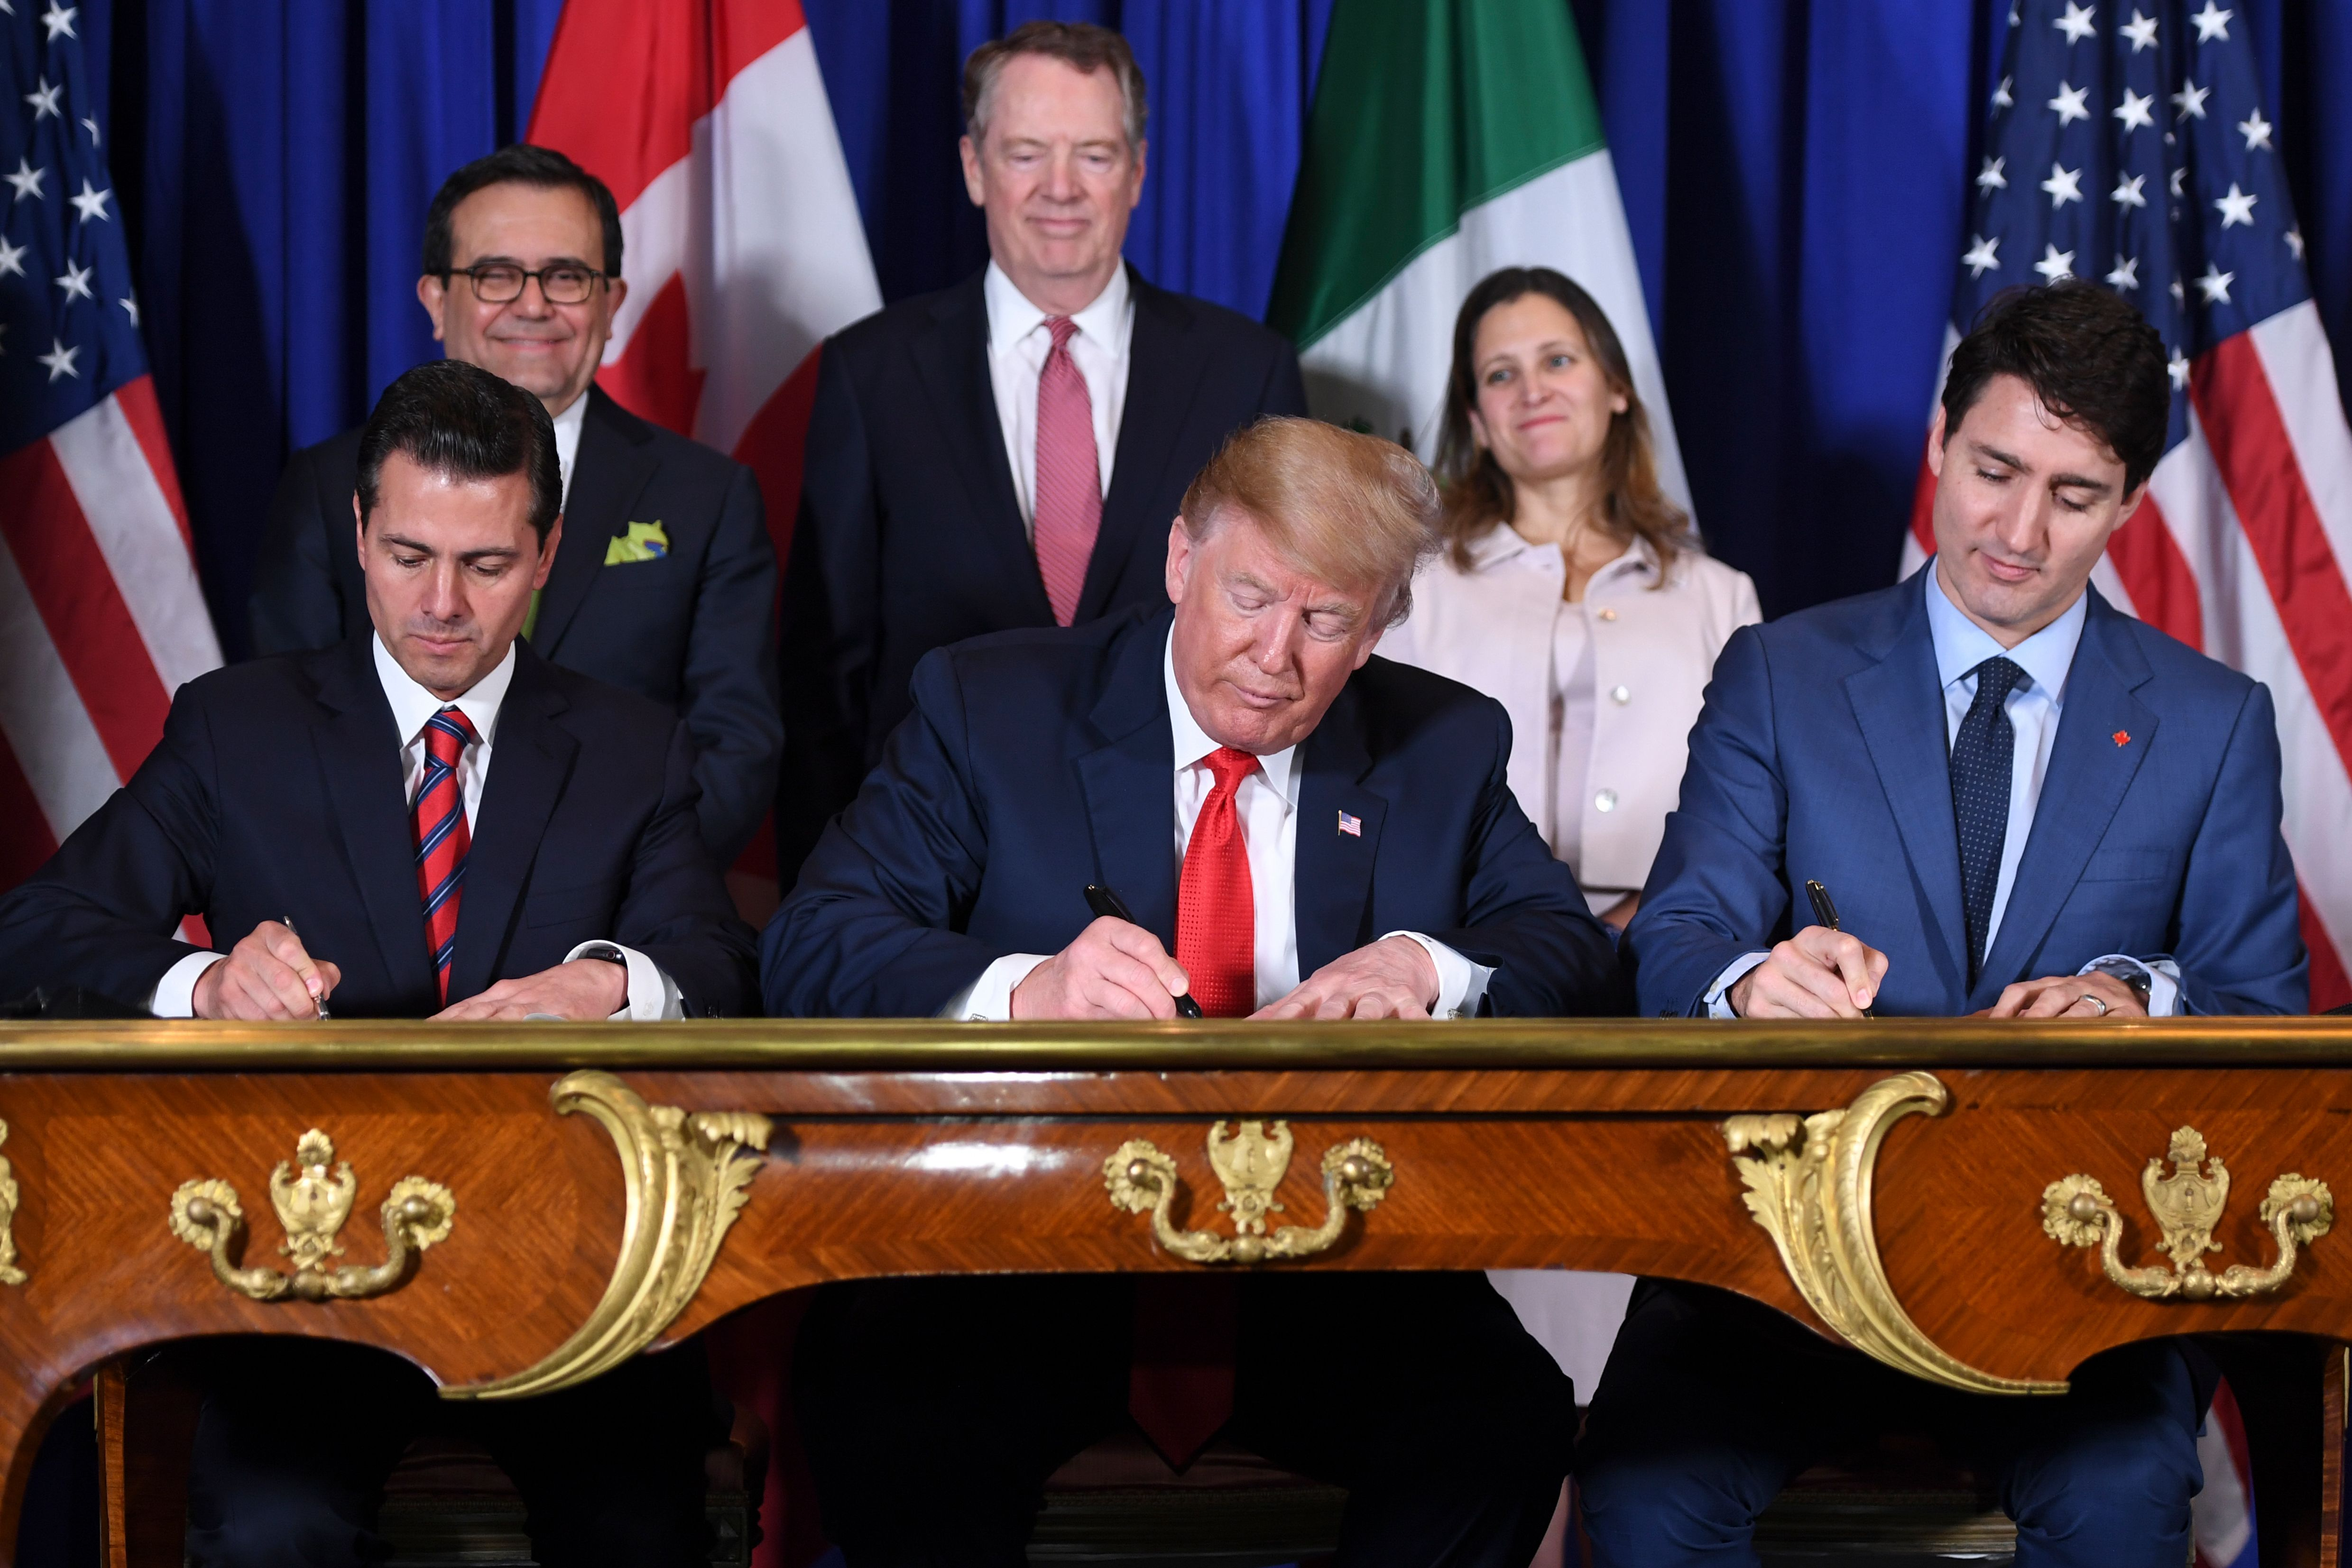 Mexico's President Enrique Pena Nieto (L) US President Donald Trump (C) and Canadian Prime Minister Justin Trudeau, sign a new free trade agreement in Buenos Aires, on November 30, 2018 (SAUL LOEB/AFP/Getty Images)